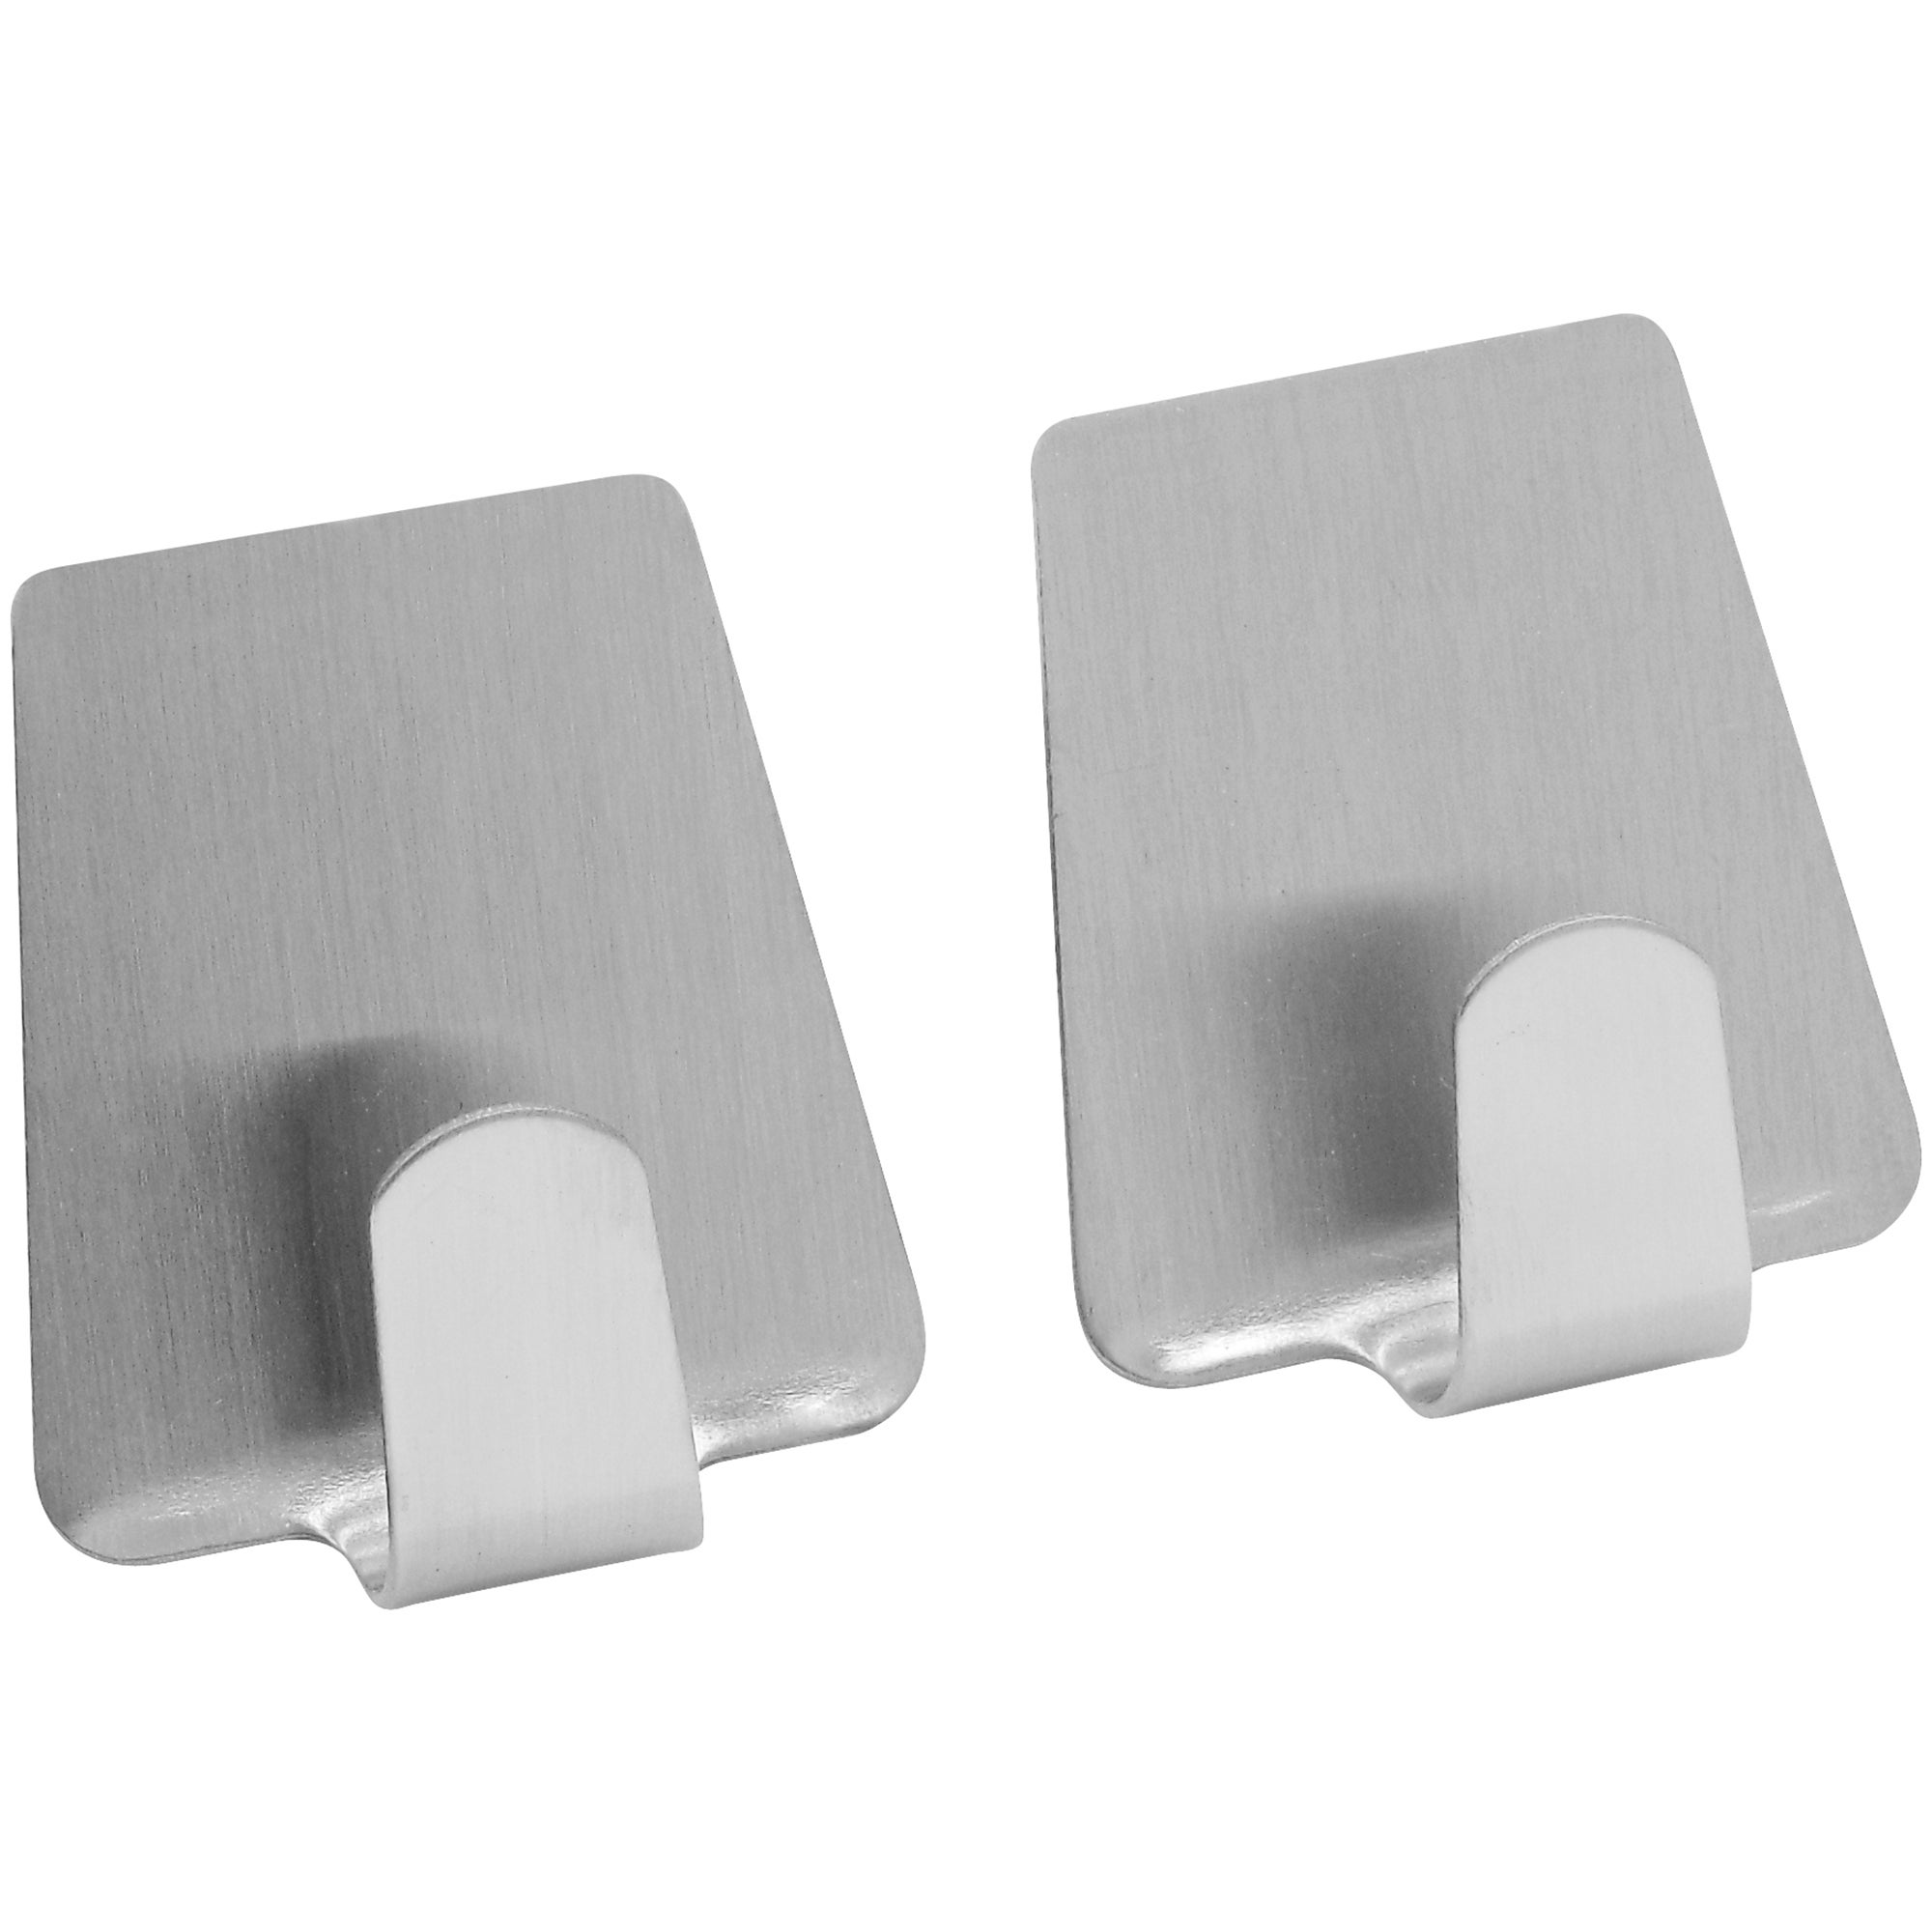 Pack of 3 Metal Hooks